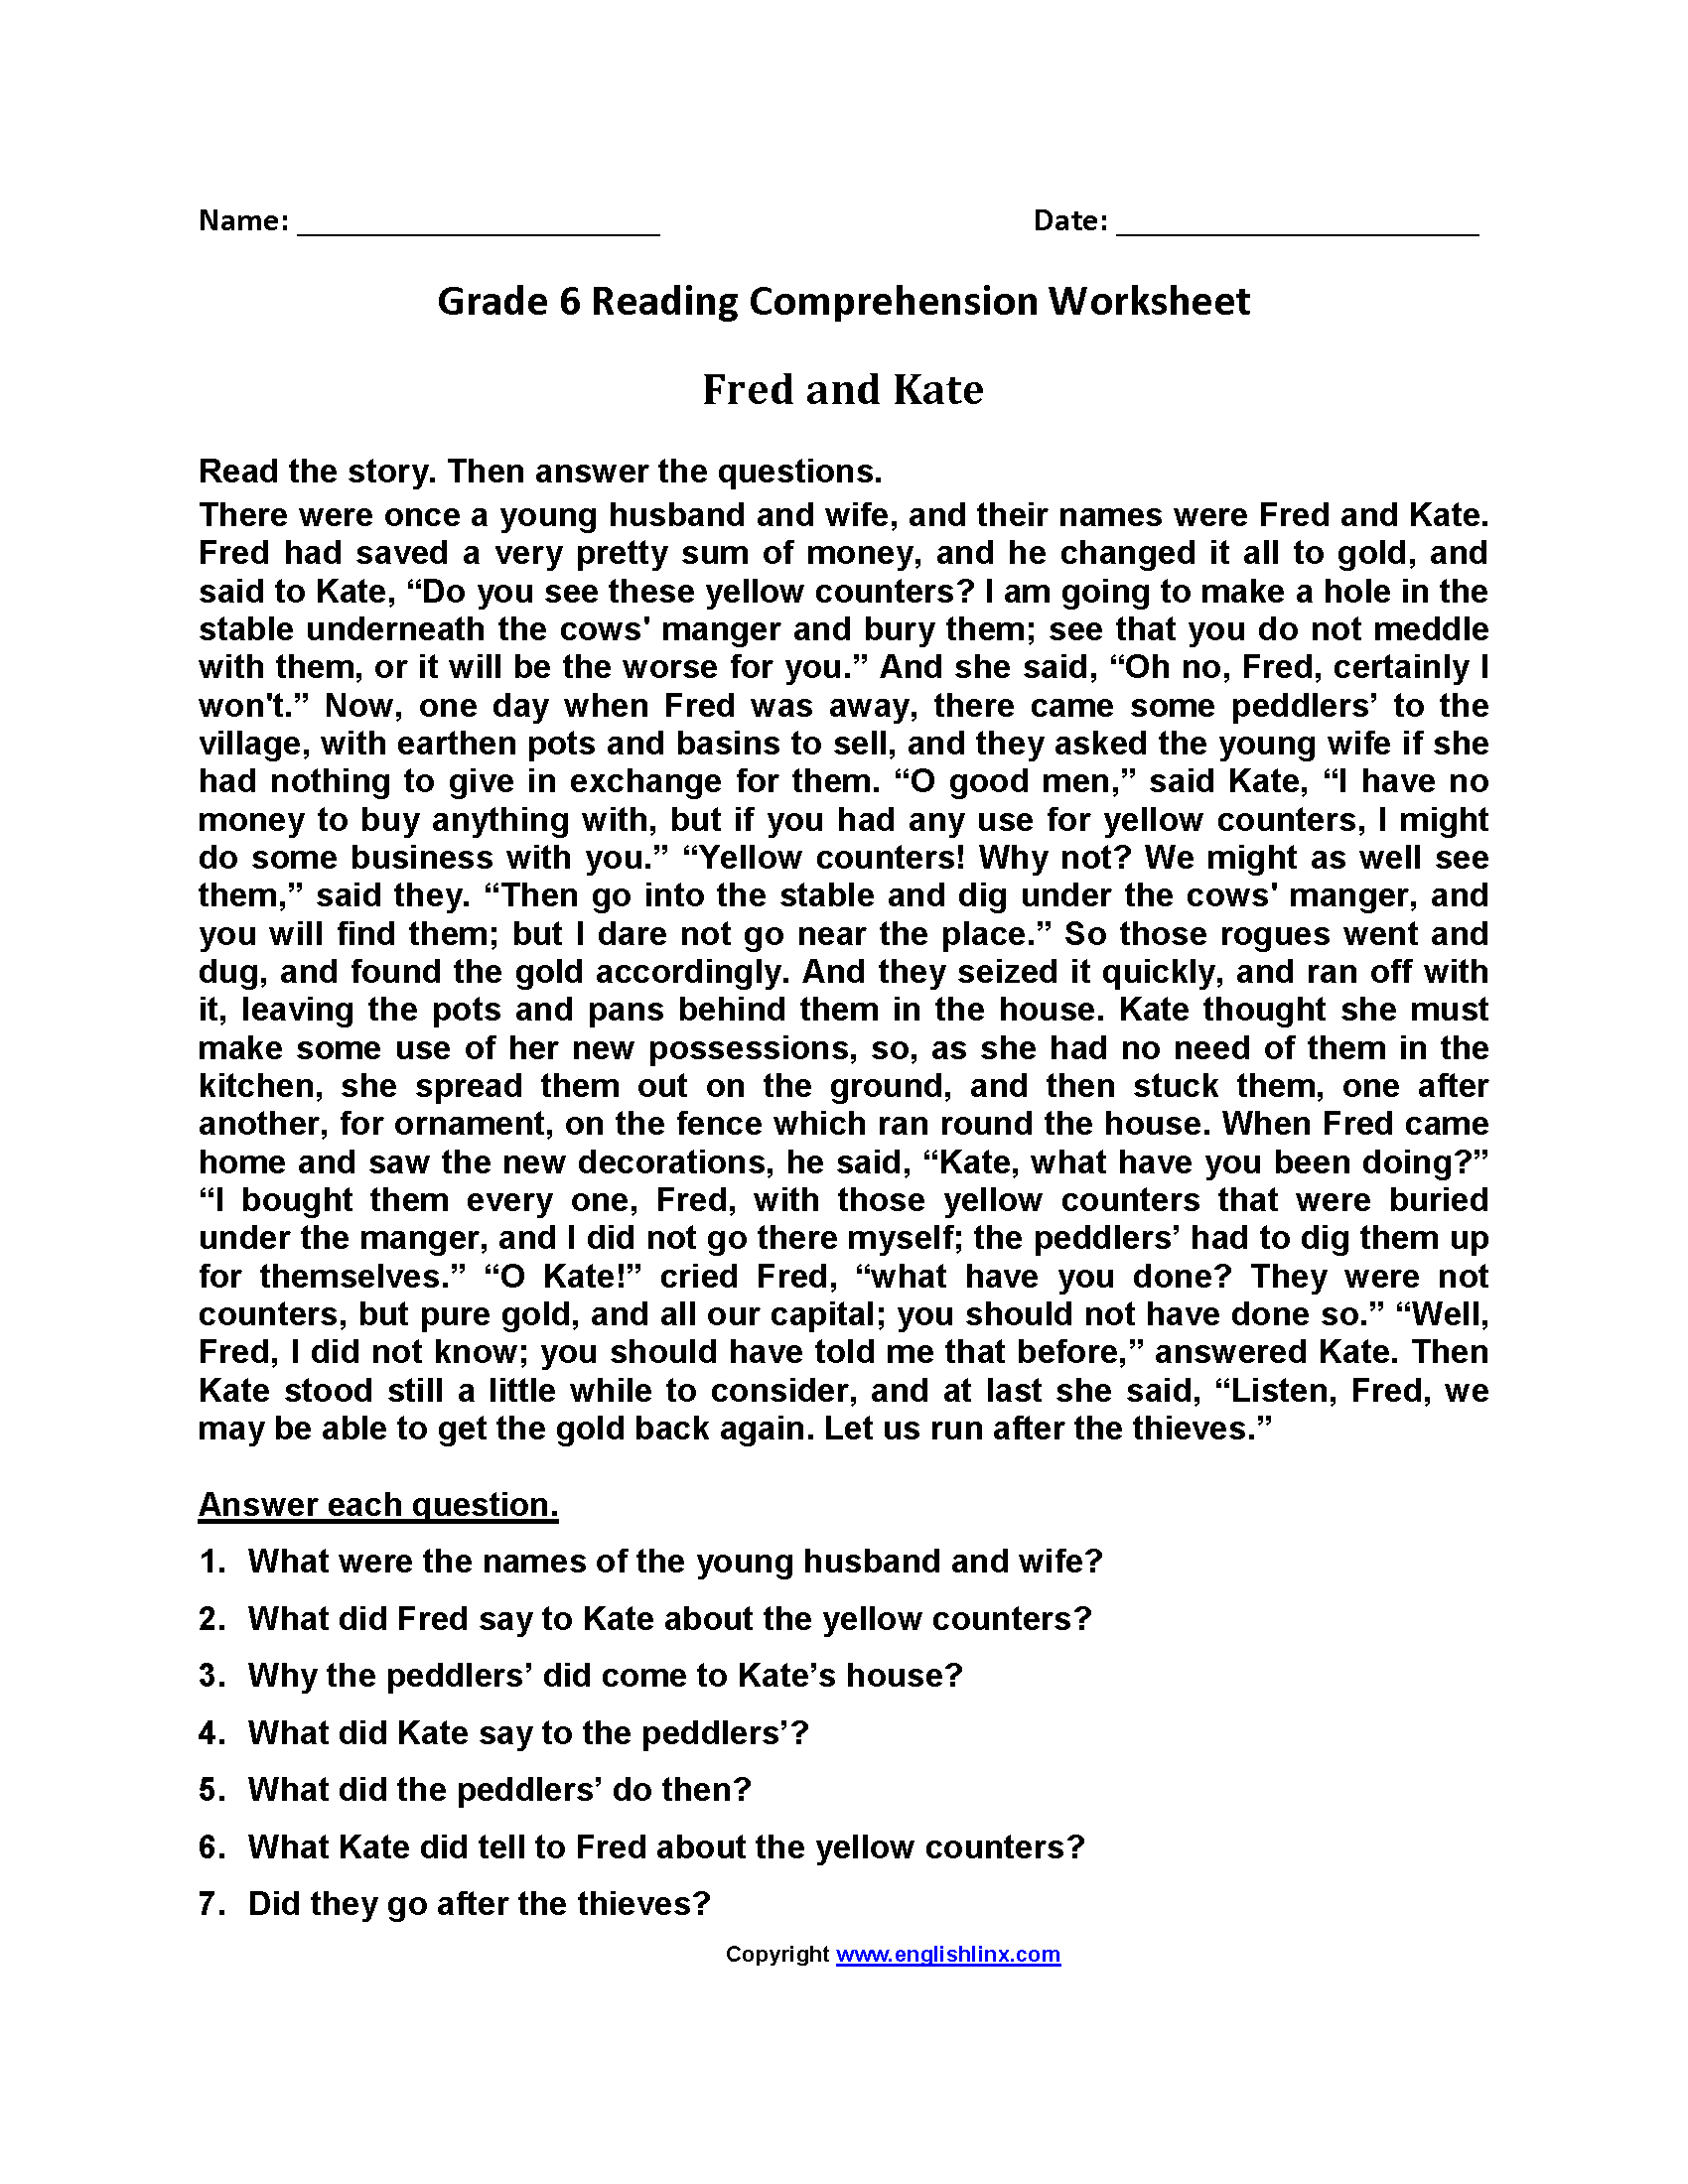 Reading Worksheets | Sixth Grade Reading Worksheets | Printable Comprehension Worksheets For Grade 6